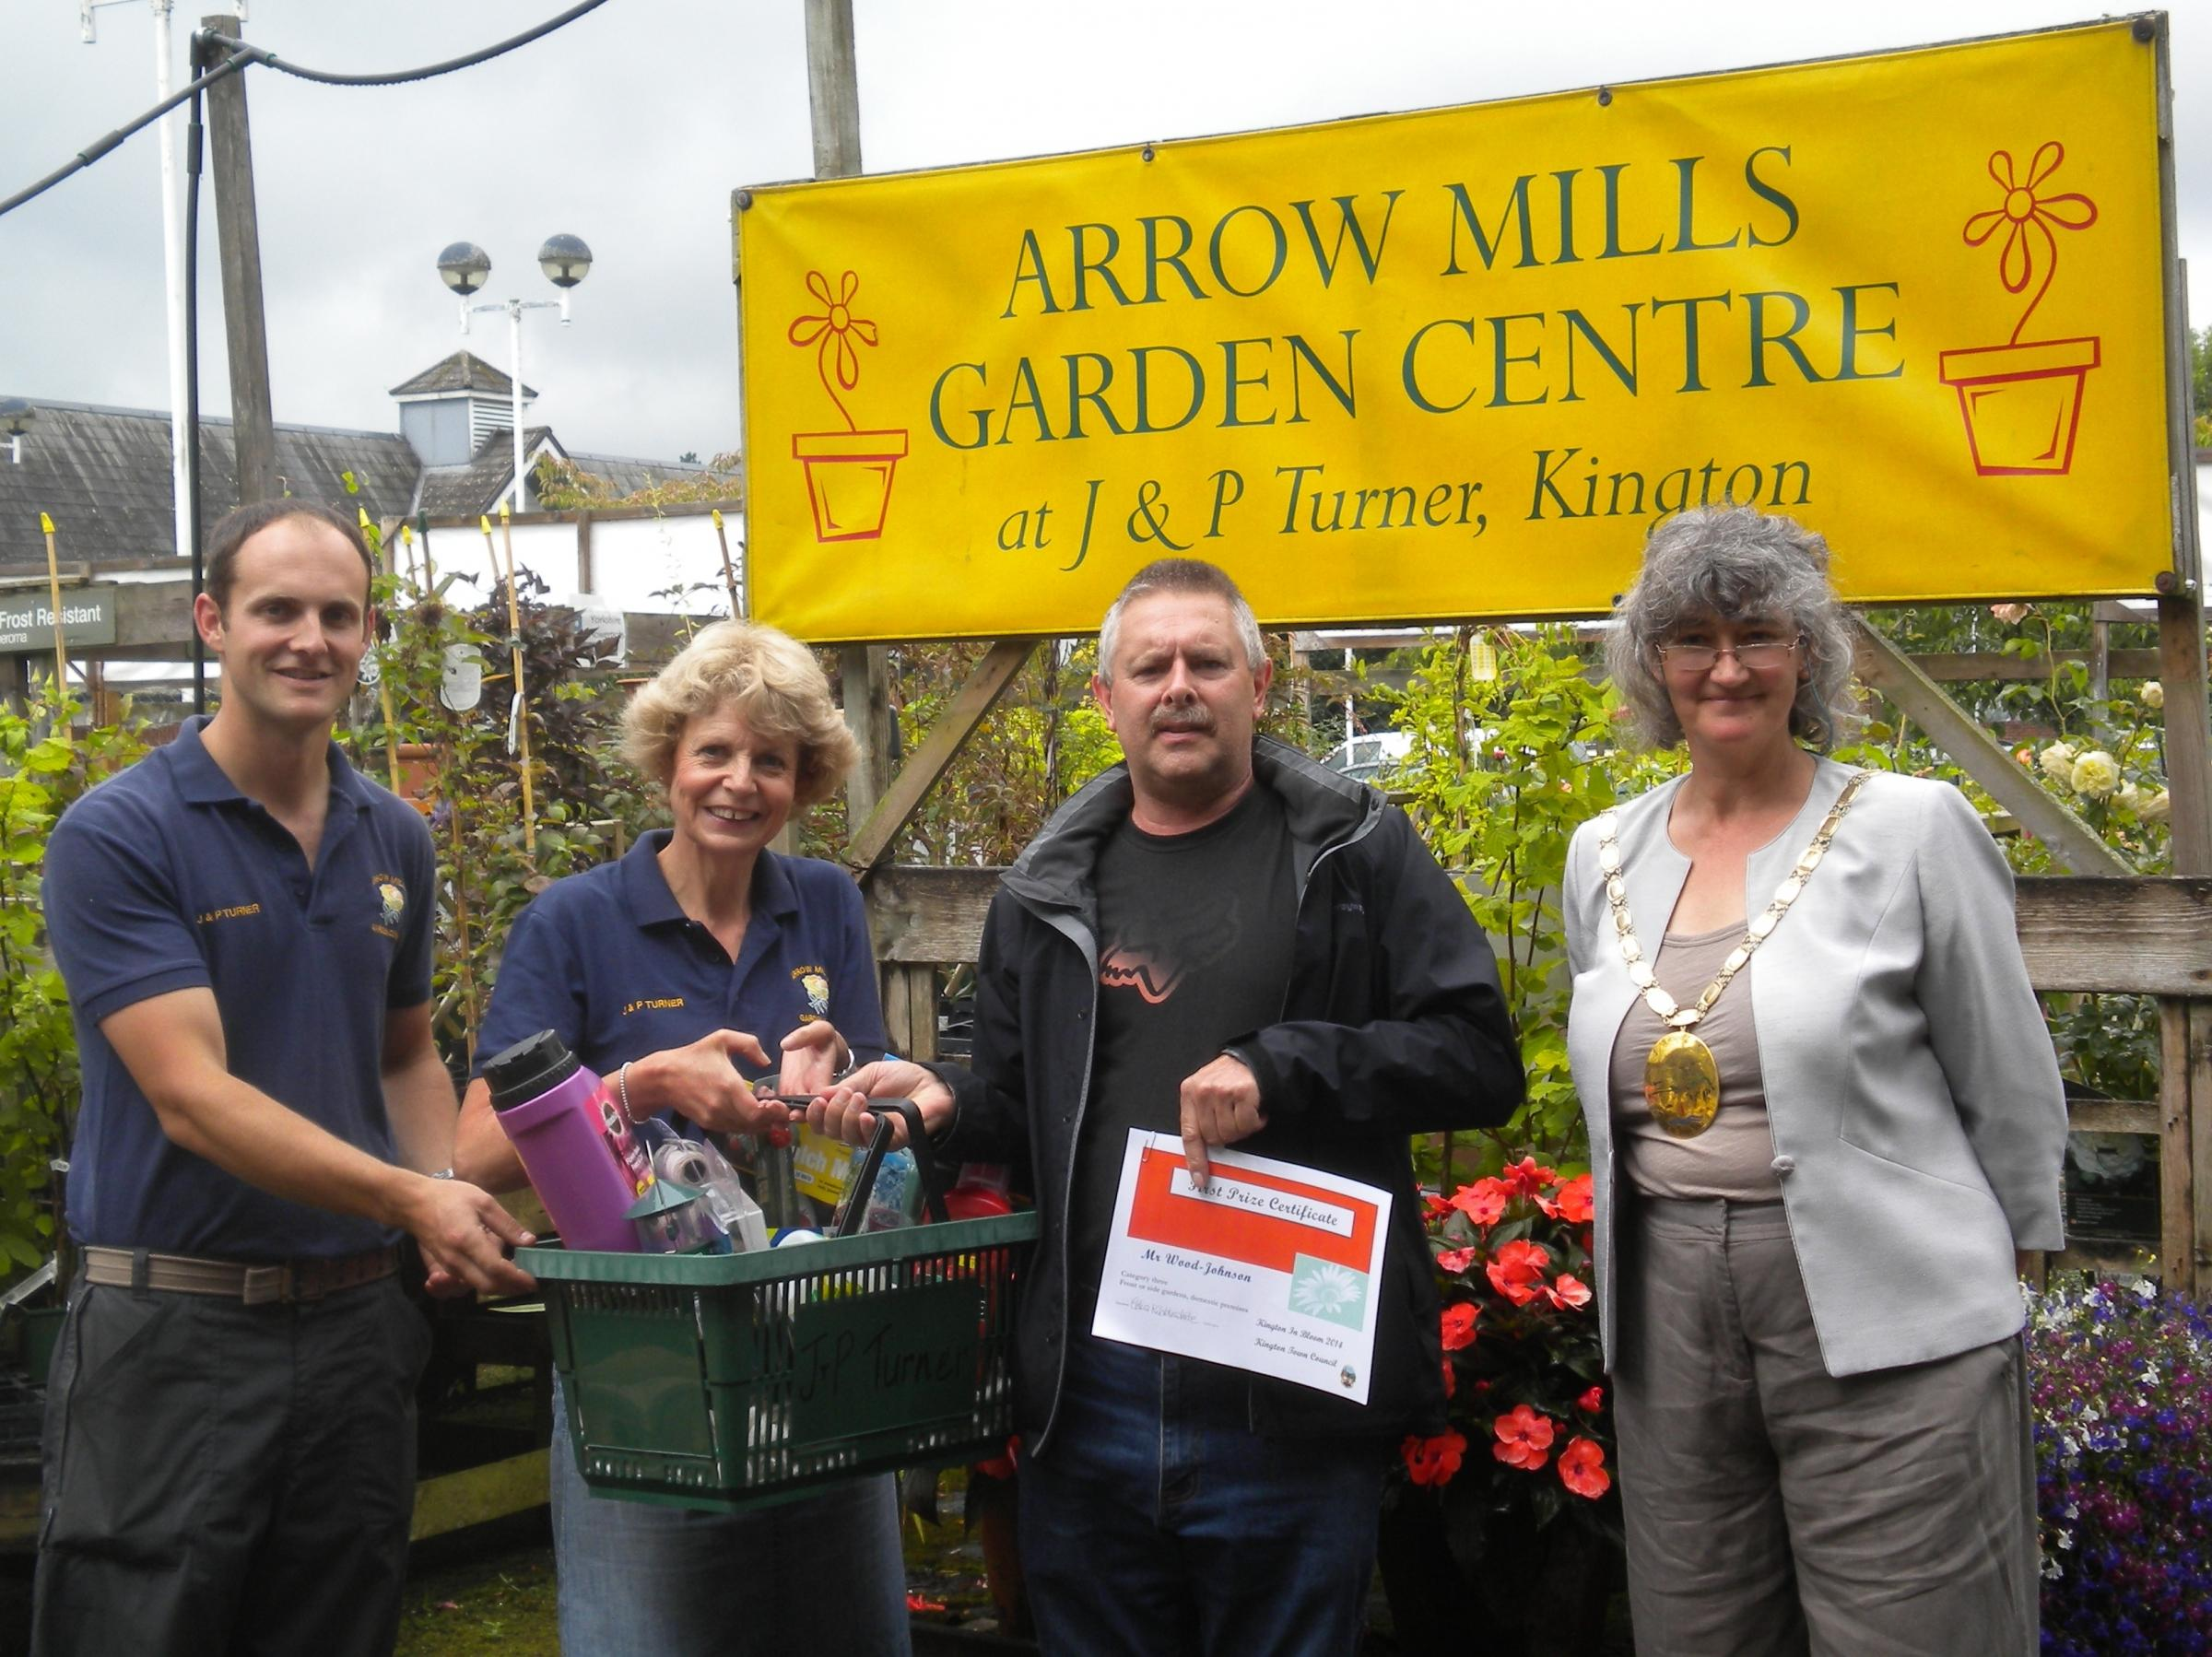 (From left) Simon and Sara Turner of Arrow Mills Garden Centre, Mr Ian Wood-Johnson - winner of the Turner Prize - and Kington mayor Celia Kibblewhite.